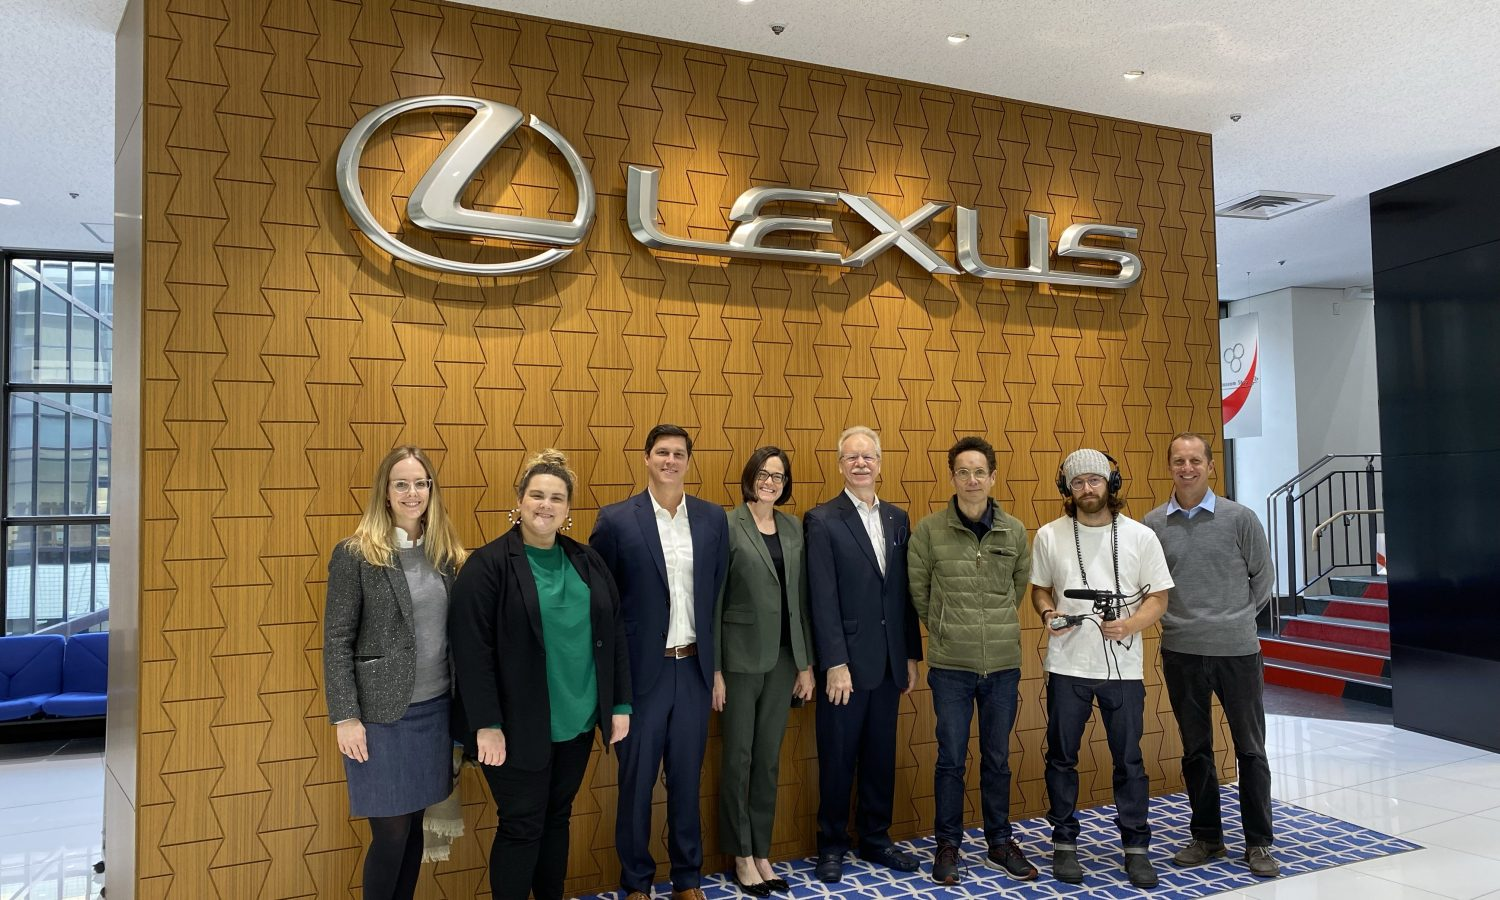 Listen Up! It's Malcolm Gladwell's Amazing Lexus Experience